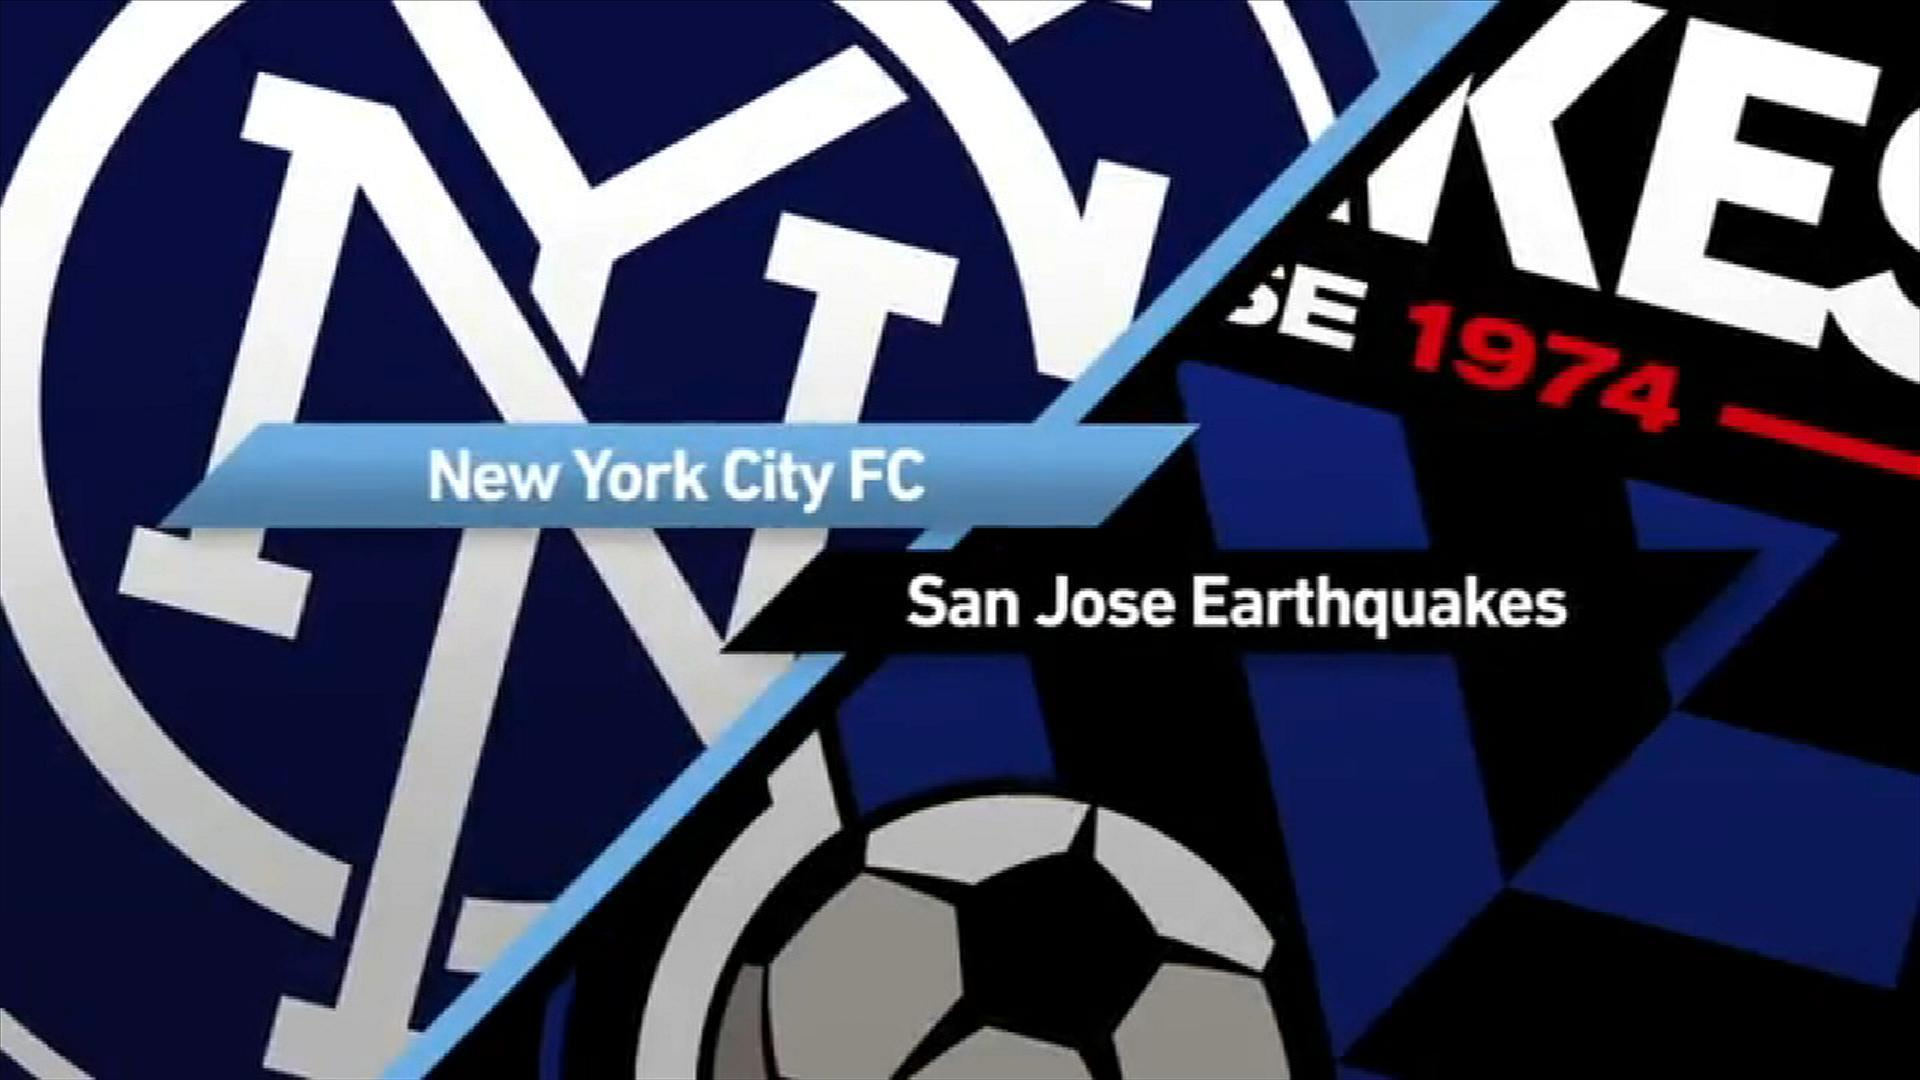 NYCFC 2-1 SJ Earthquakes - Via MLS